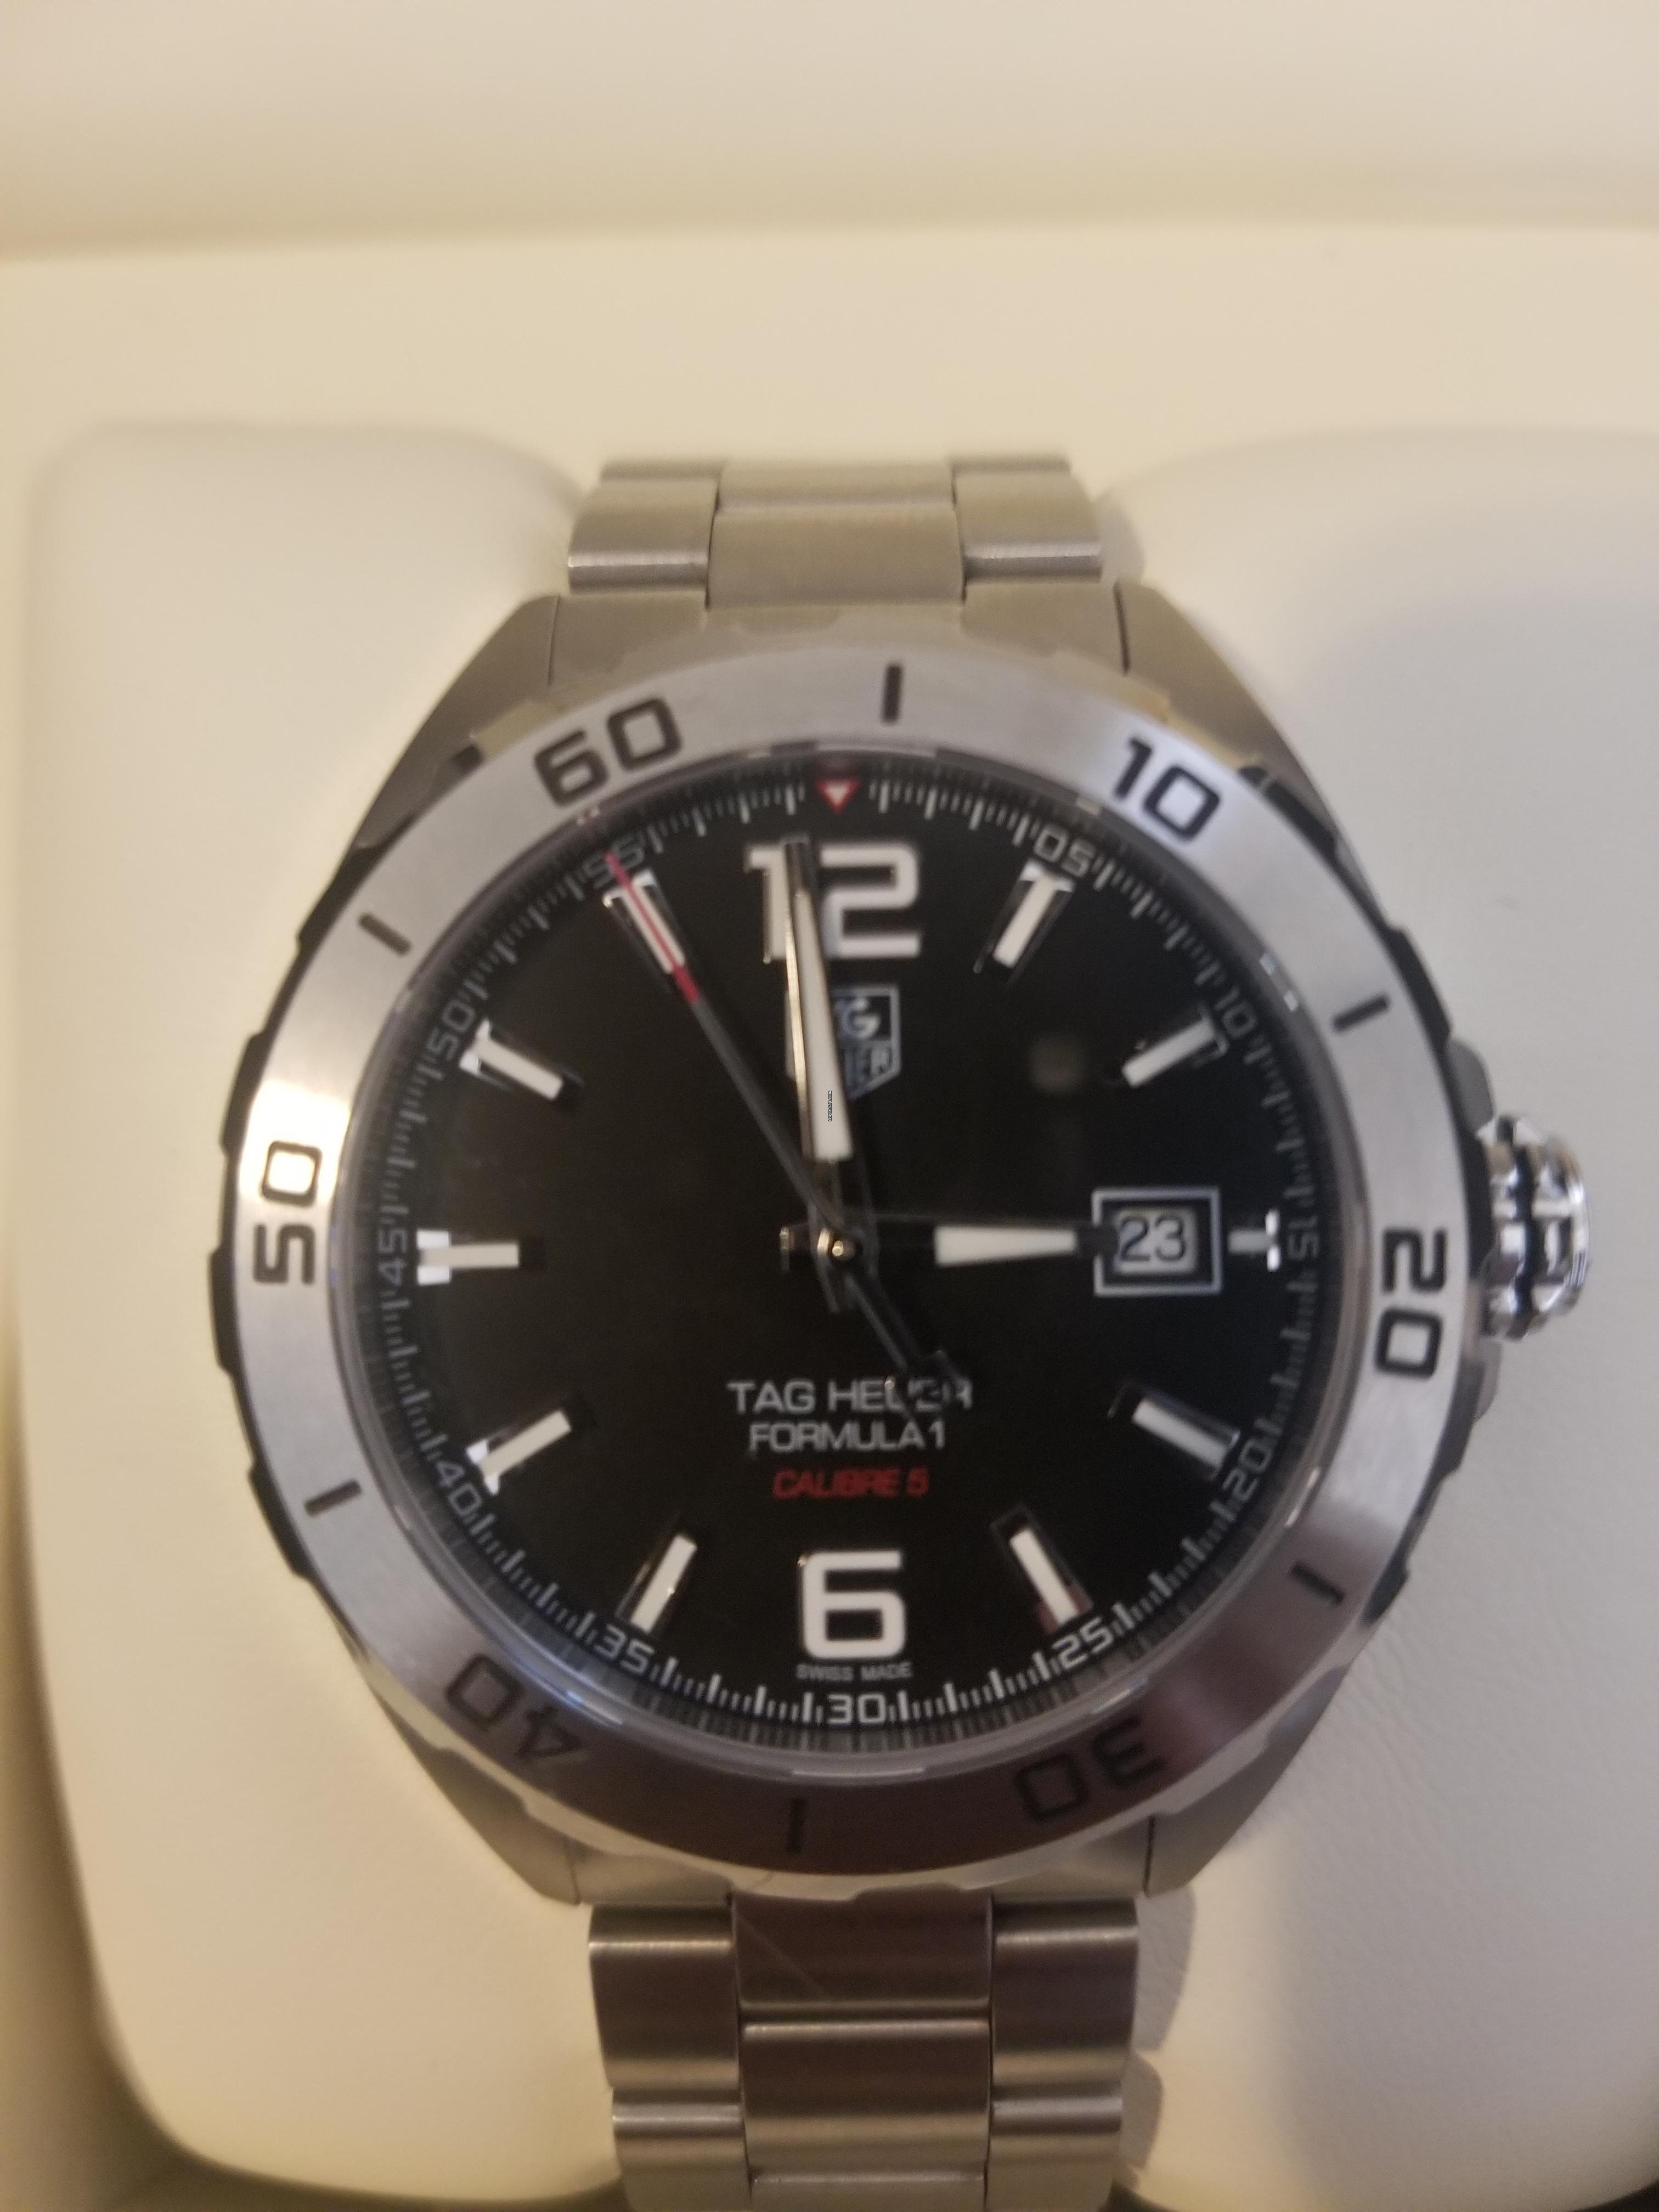 c52a1dcd5 TAG Heuer Formula 1 Calibre 5 for Listing no longer available for ...